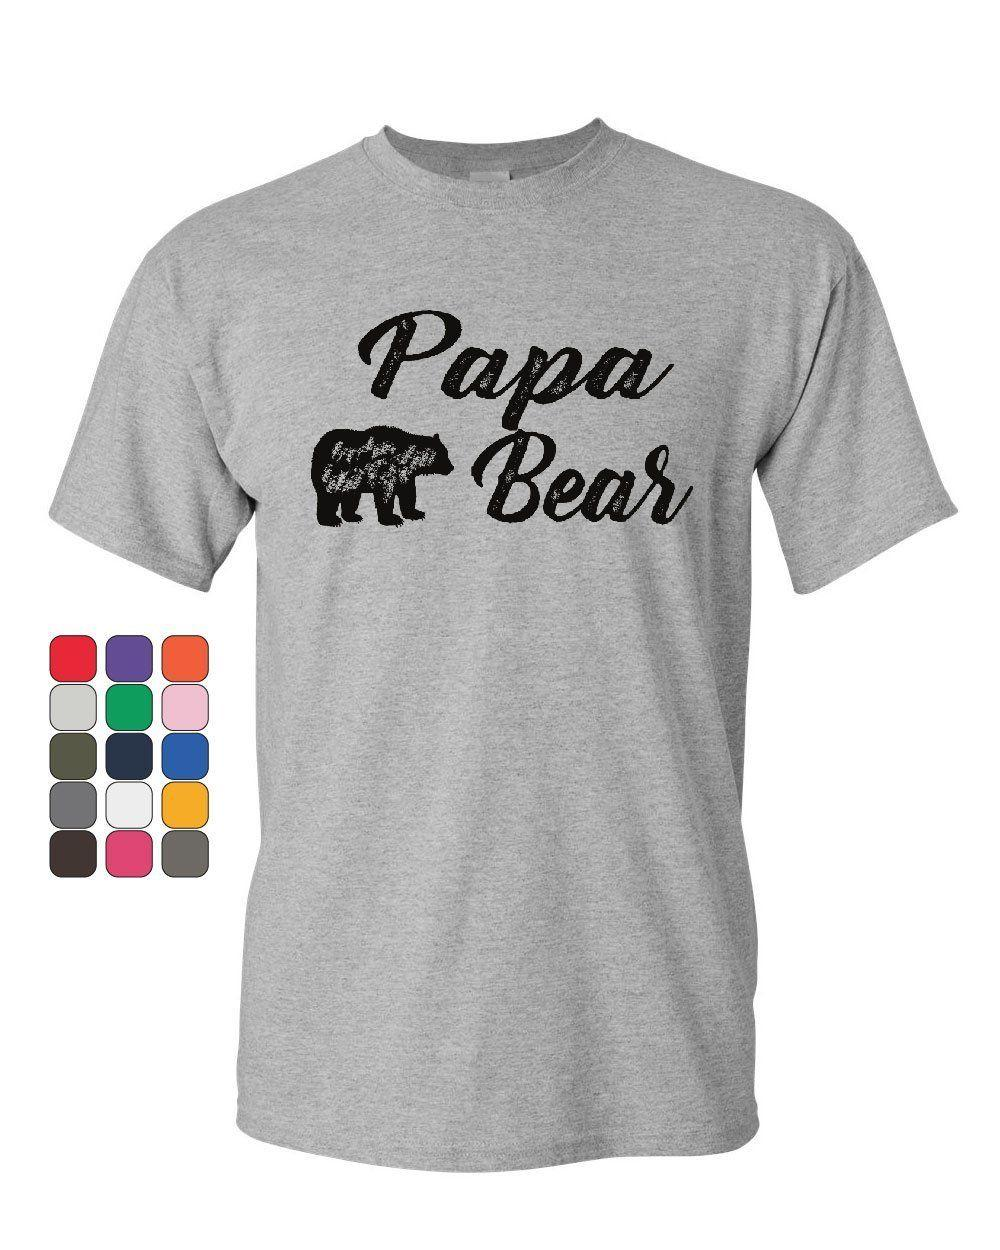 3075807e7 Papa Bear T-Shirt For Dad Father's Day Protector of the Family Mens Tee  ShirtFunny free shipping Unisex Casual tshirt gift